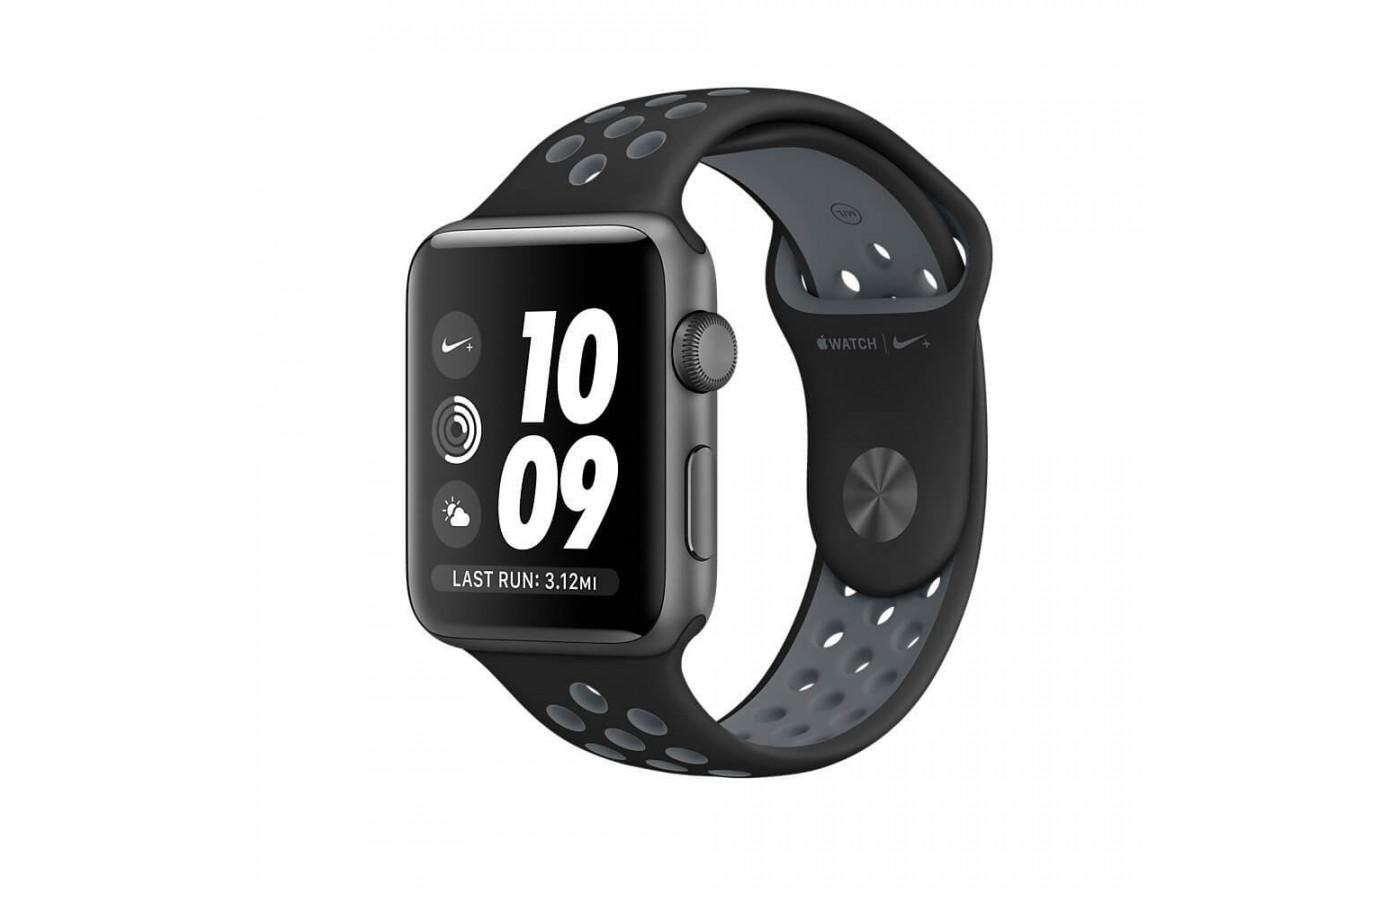 the Apple Watch Nike+ is a powerful fitness tracker and smart watch